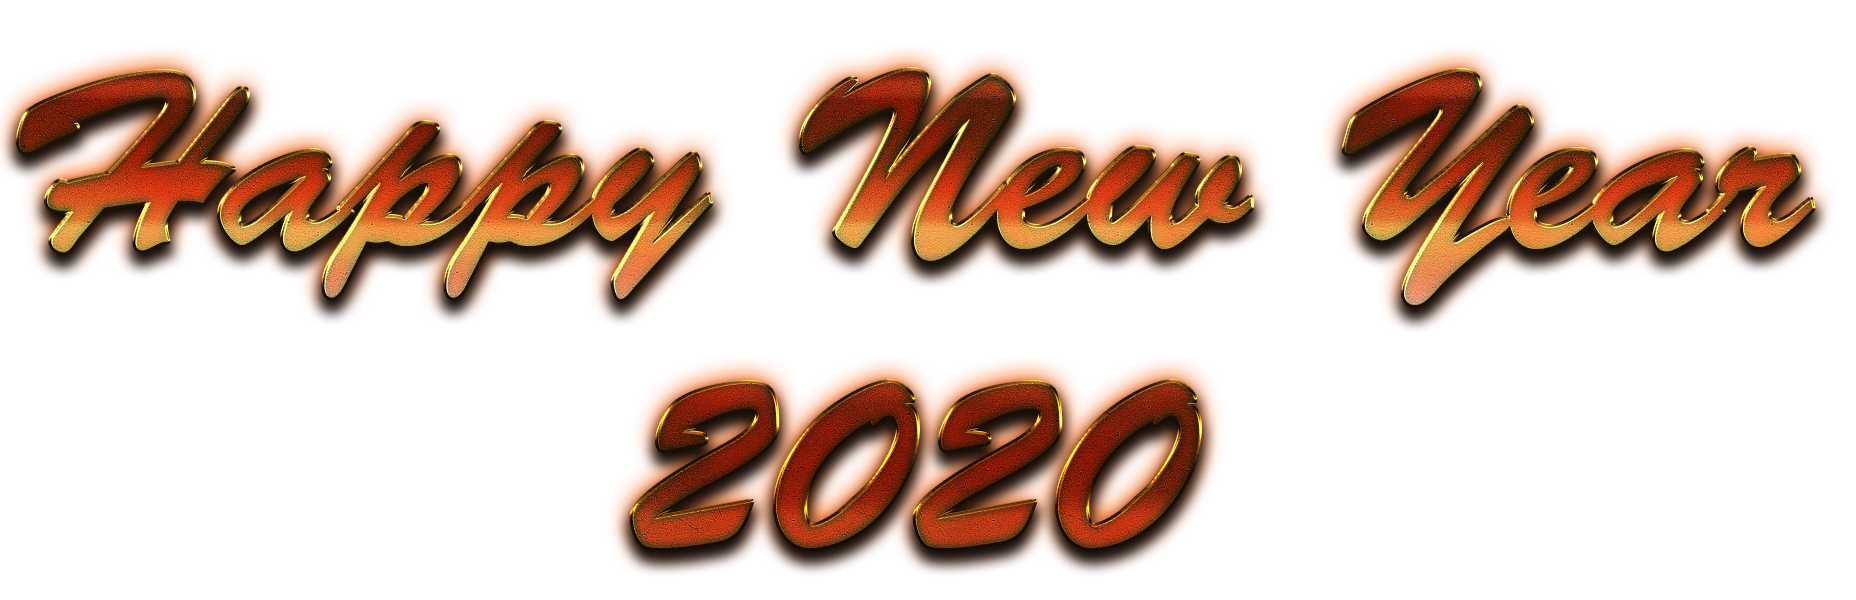 Happy New Year 2020 Transparent Image